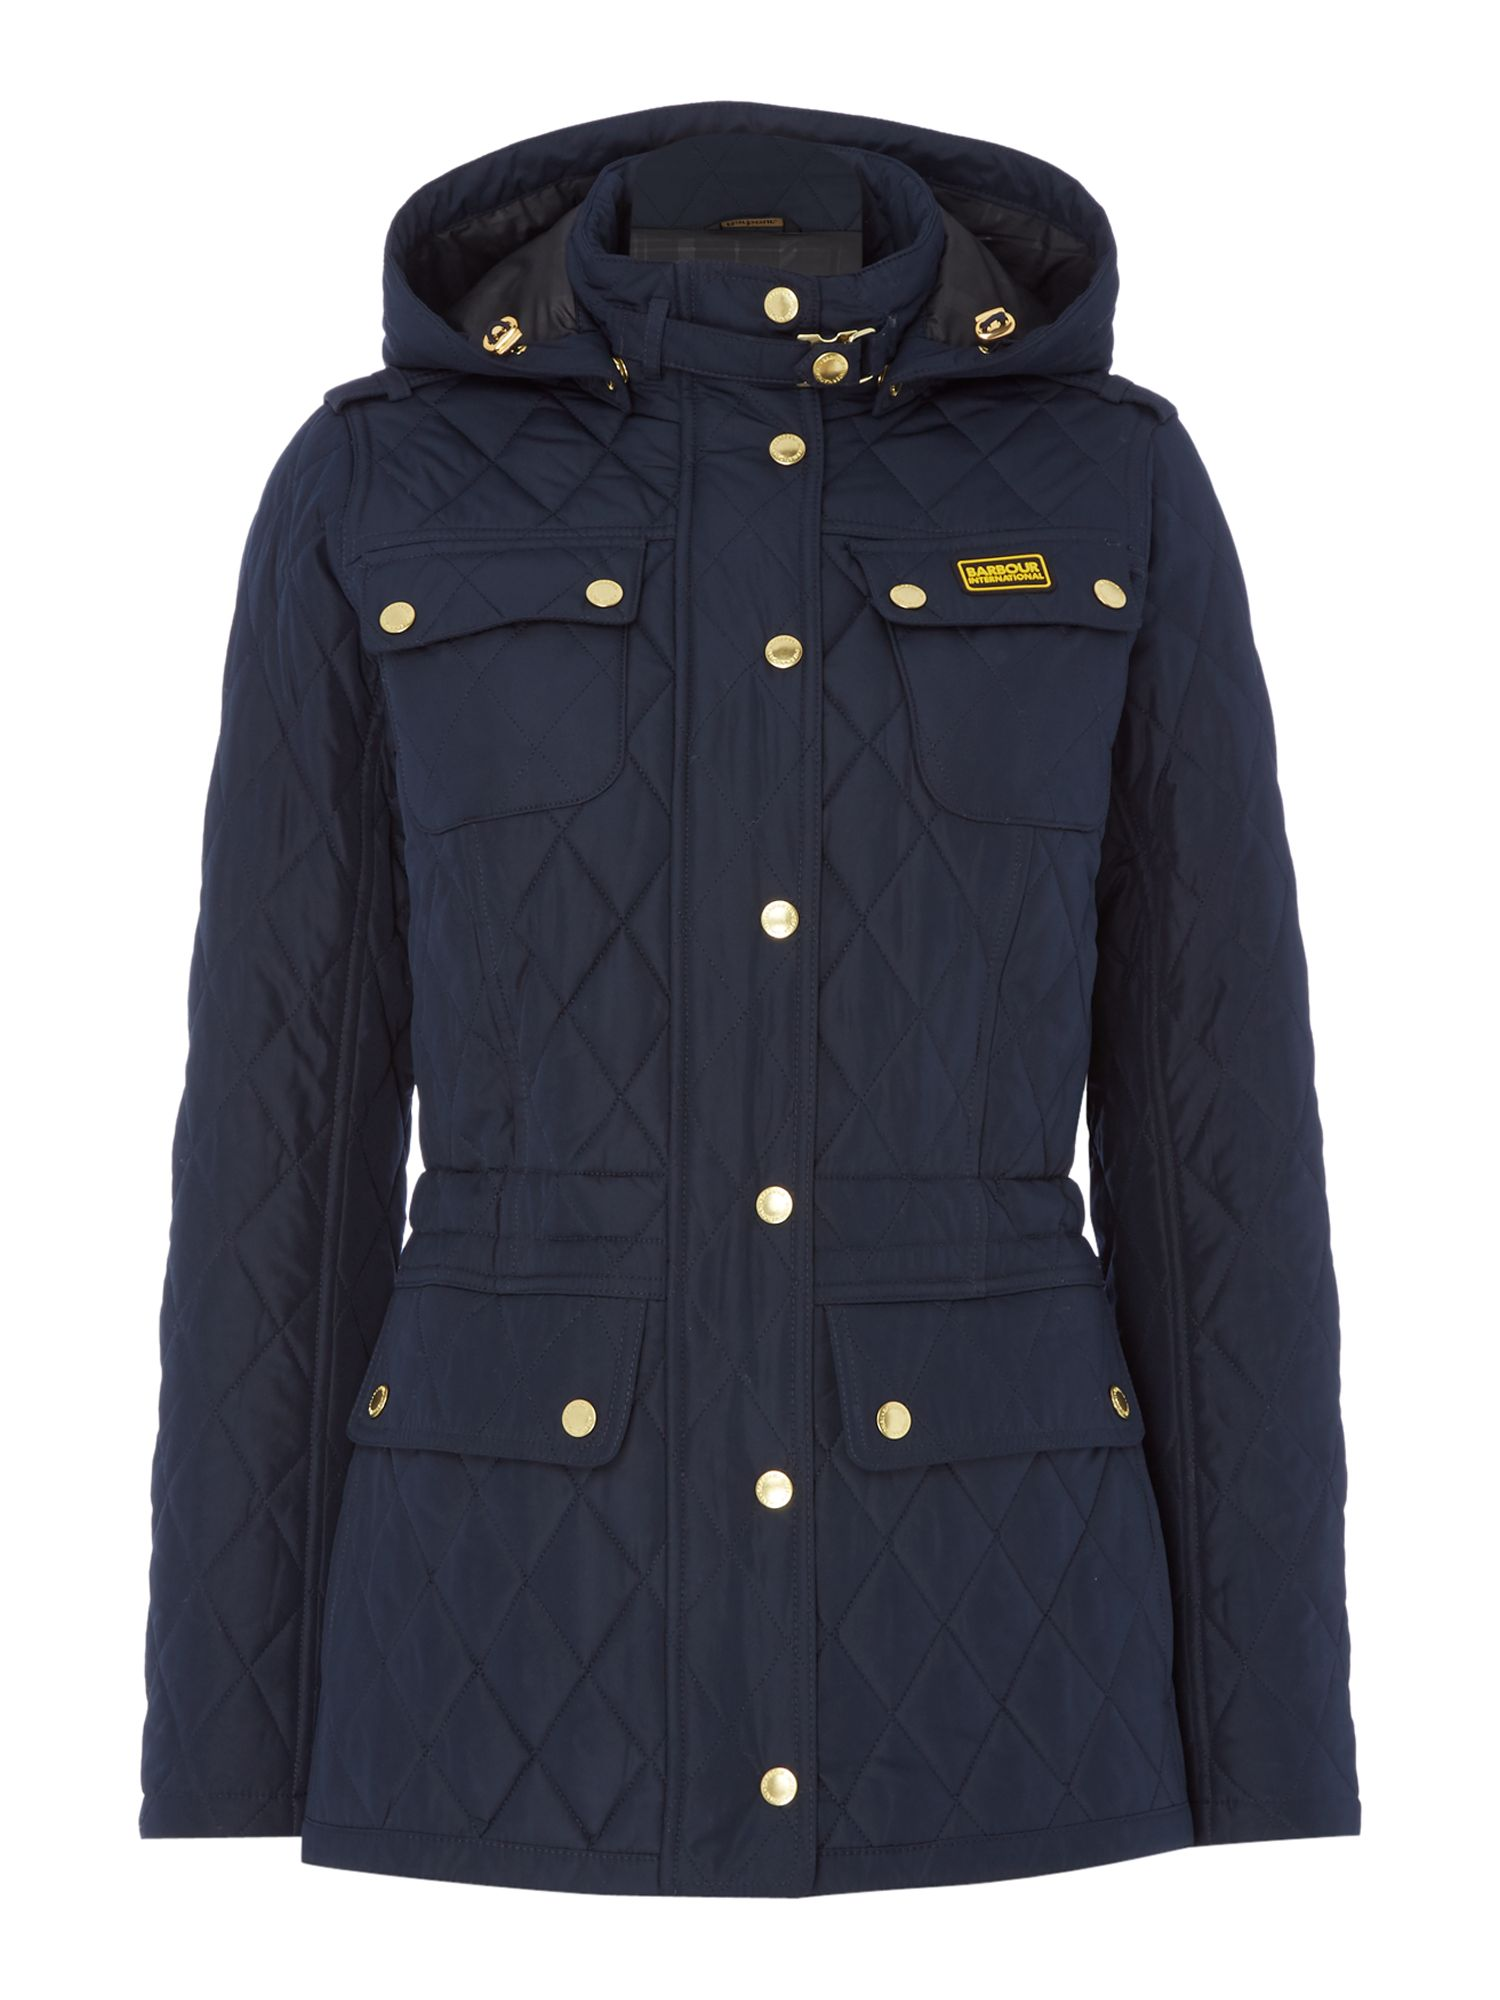 Barbour Barbour international absorber parka, Blue